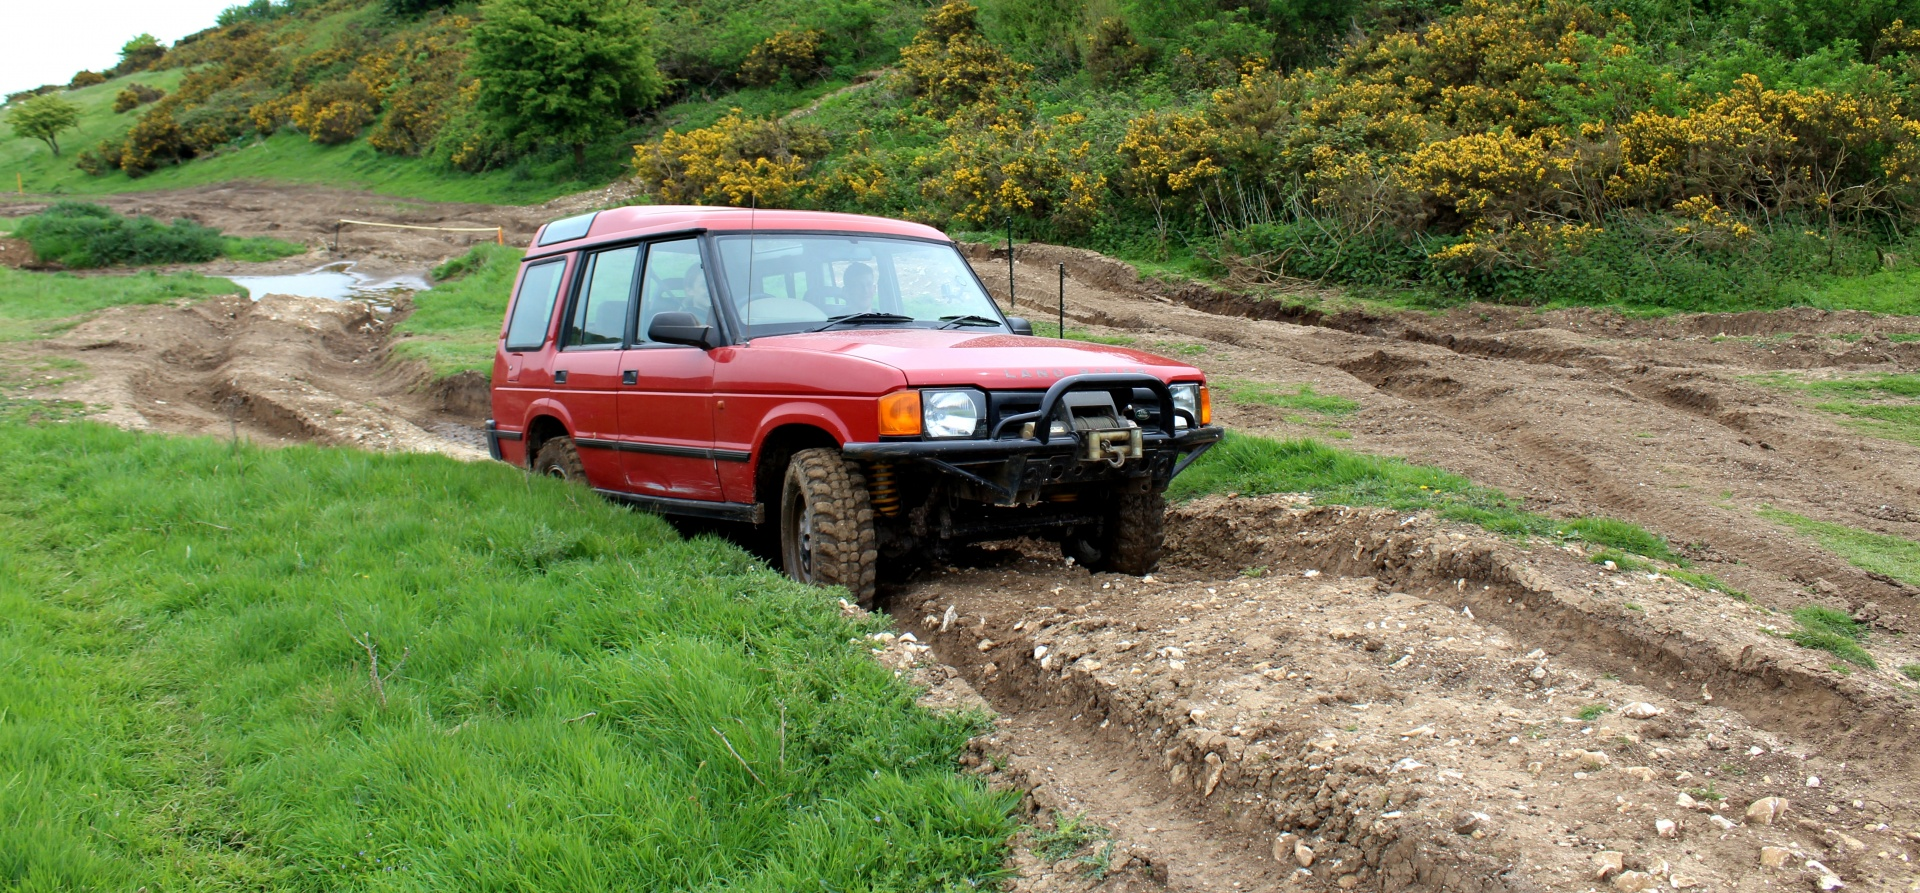 Dorchester 4x4 Adventure Experience - Shared-10